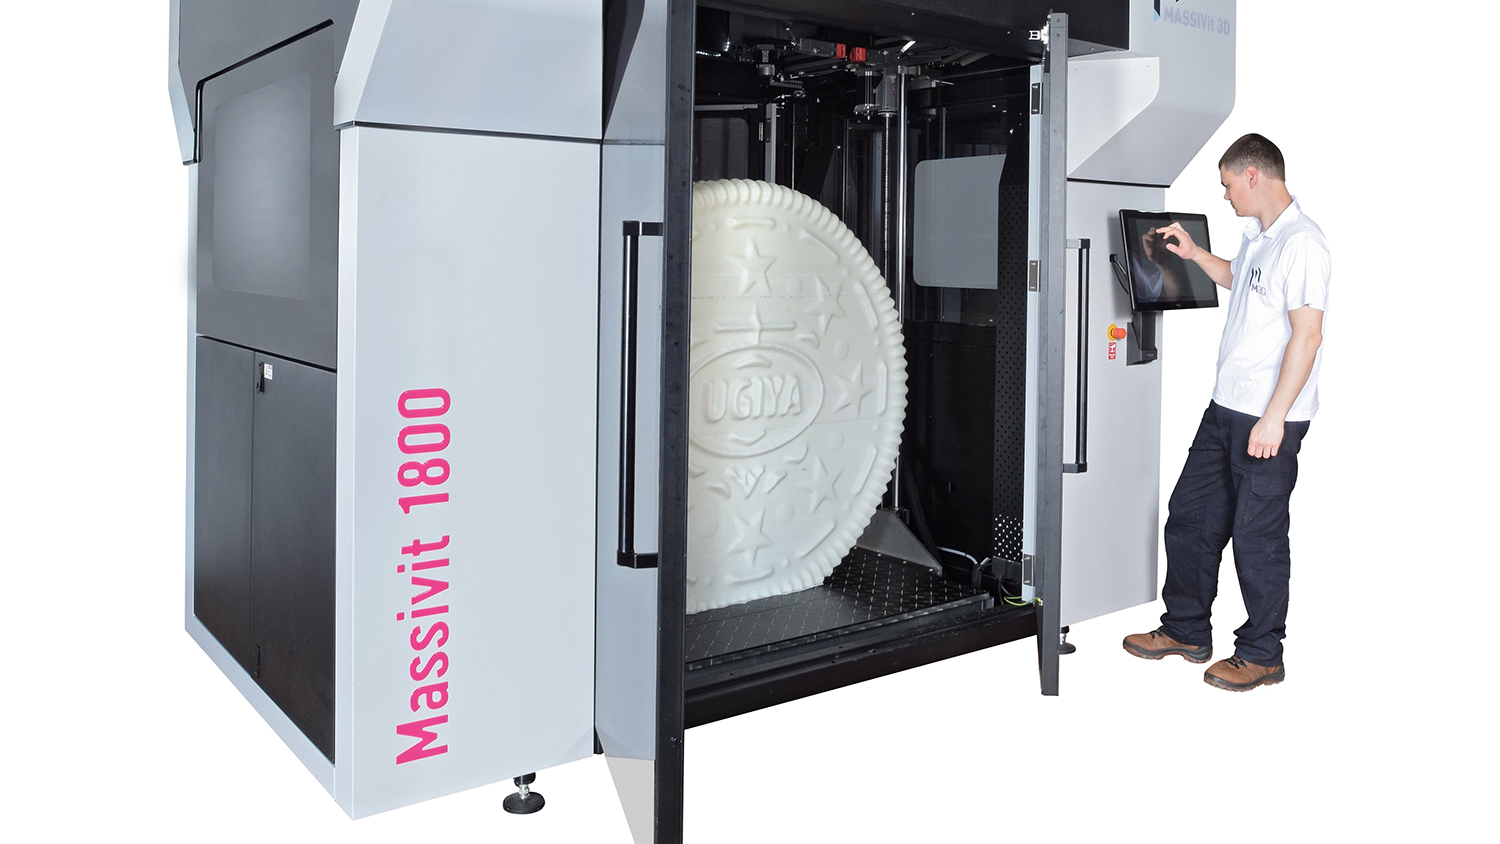 D Printing Exhibition Uk : This d printer can print objects as tall mc hammer